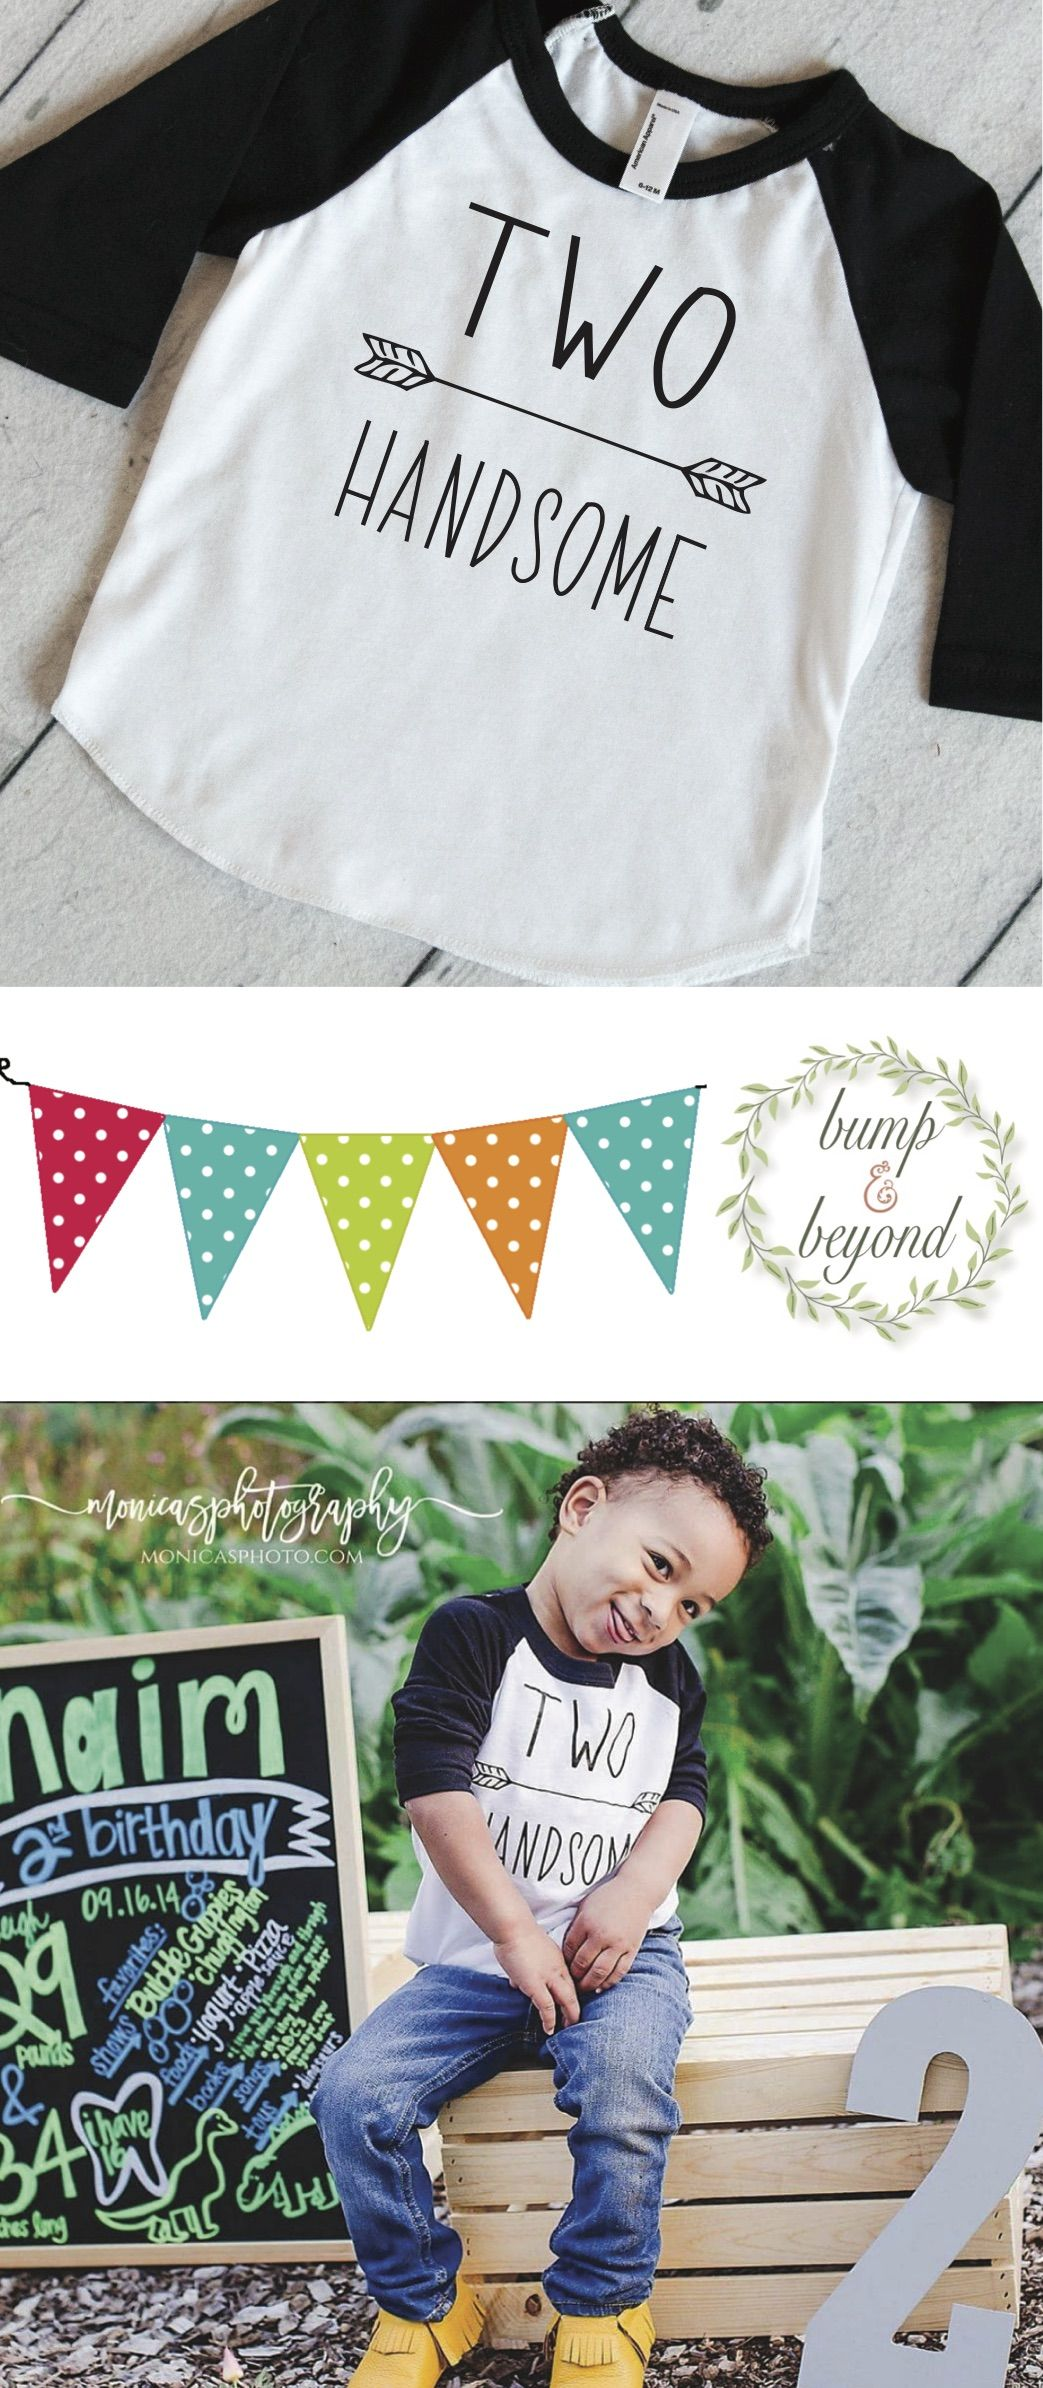 birthday shirt for boys this birthday boy outfit also makes a great photo prop we at bump and beyond designs love to help you celebrate lifes precious